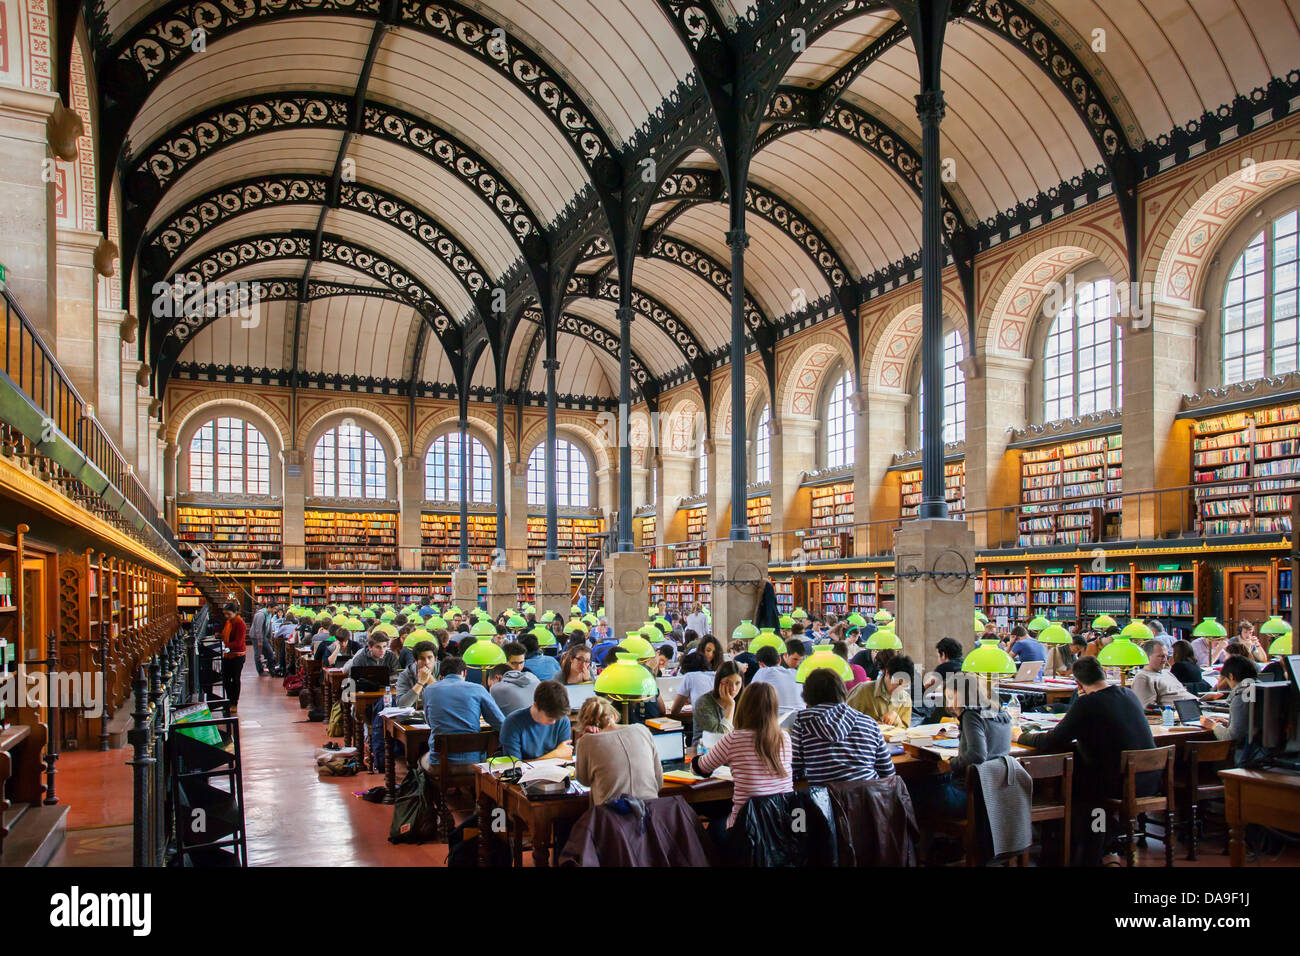 Full seats at the Bibliotheque Sainte Genevieve - public library in the Latin Quarter, Paris France Stock Photo